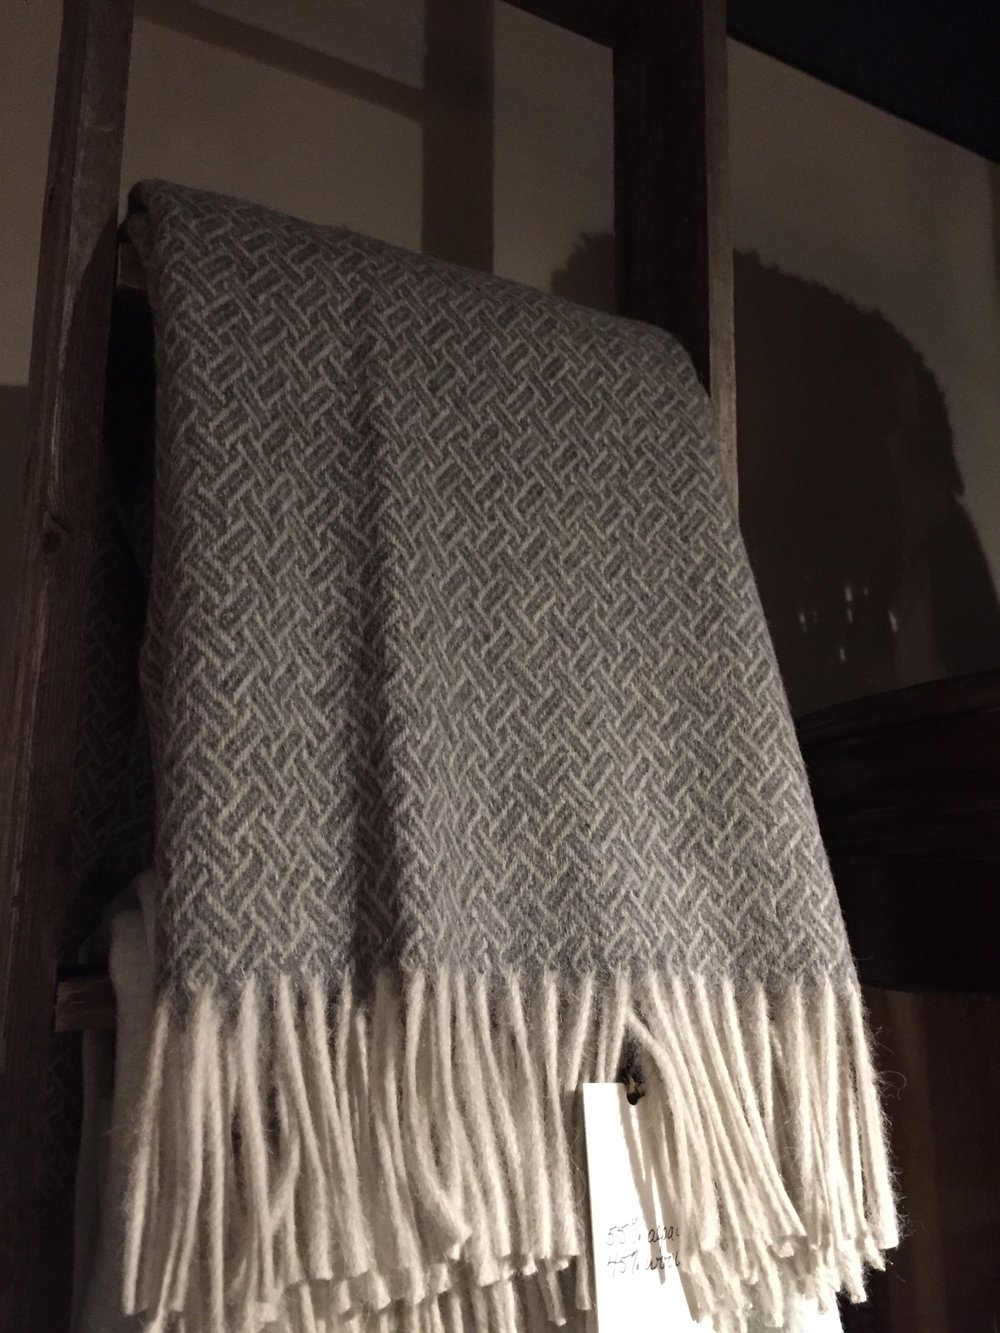 Throw Cambridge , 55% alpaca 45% wool, 55x78 inc, Charcoal and Ivory